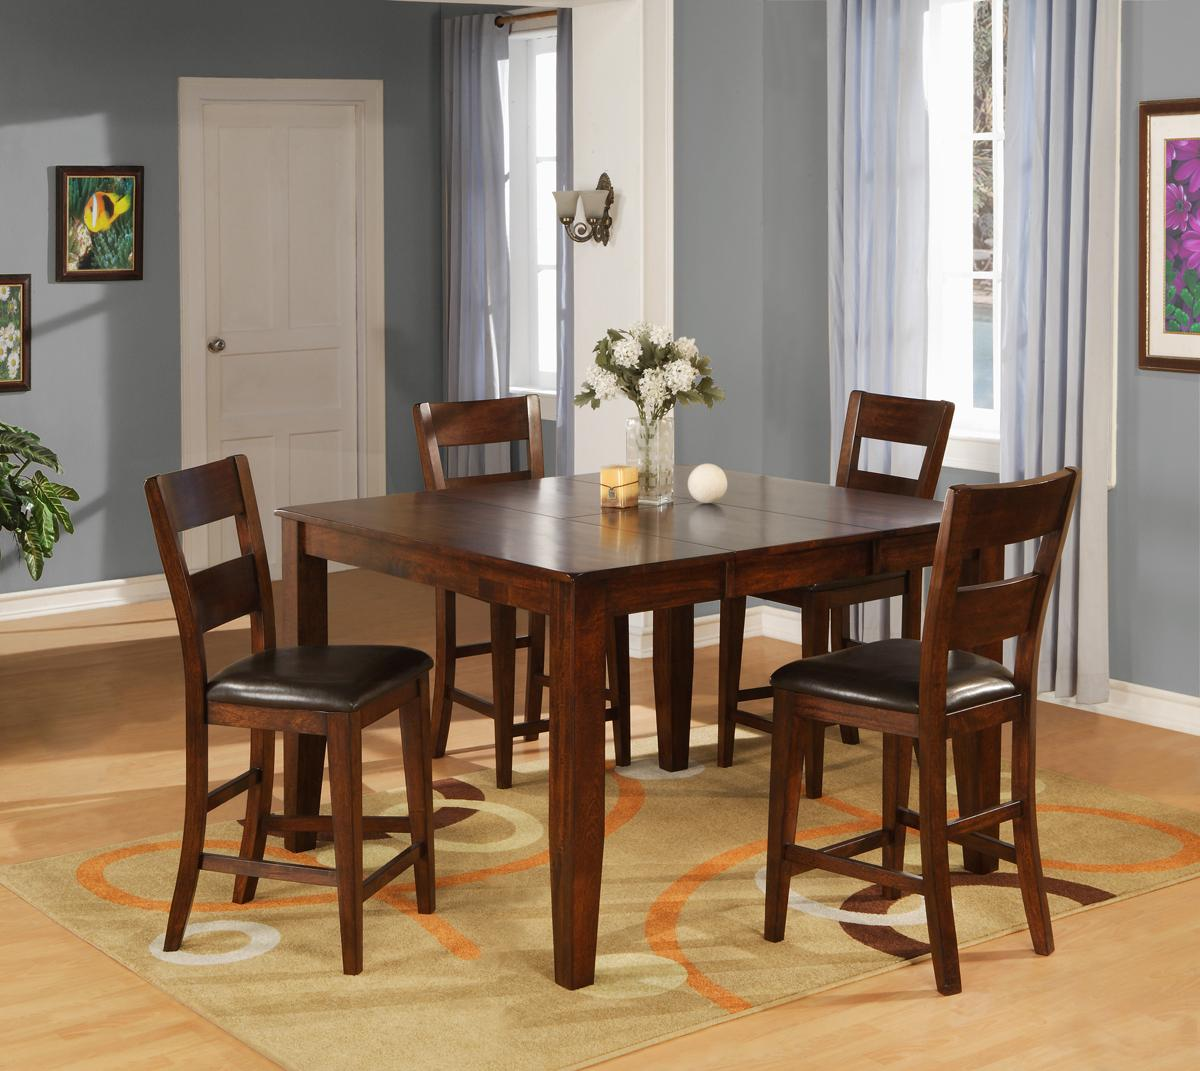 Ellis Table + 4 Chairs + Bench | Walker\'s Furniture | Table & Chair ...